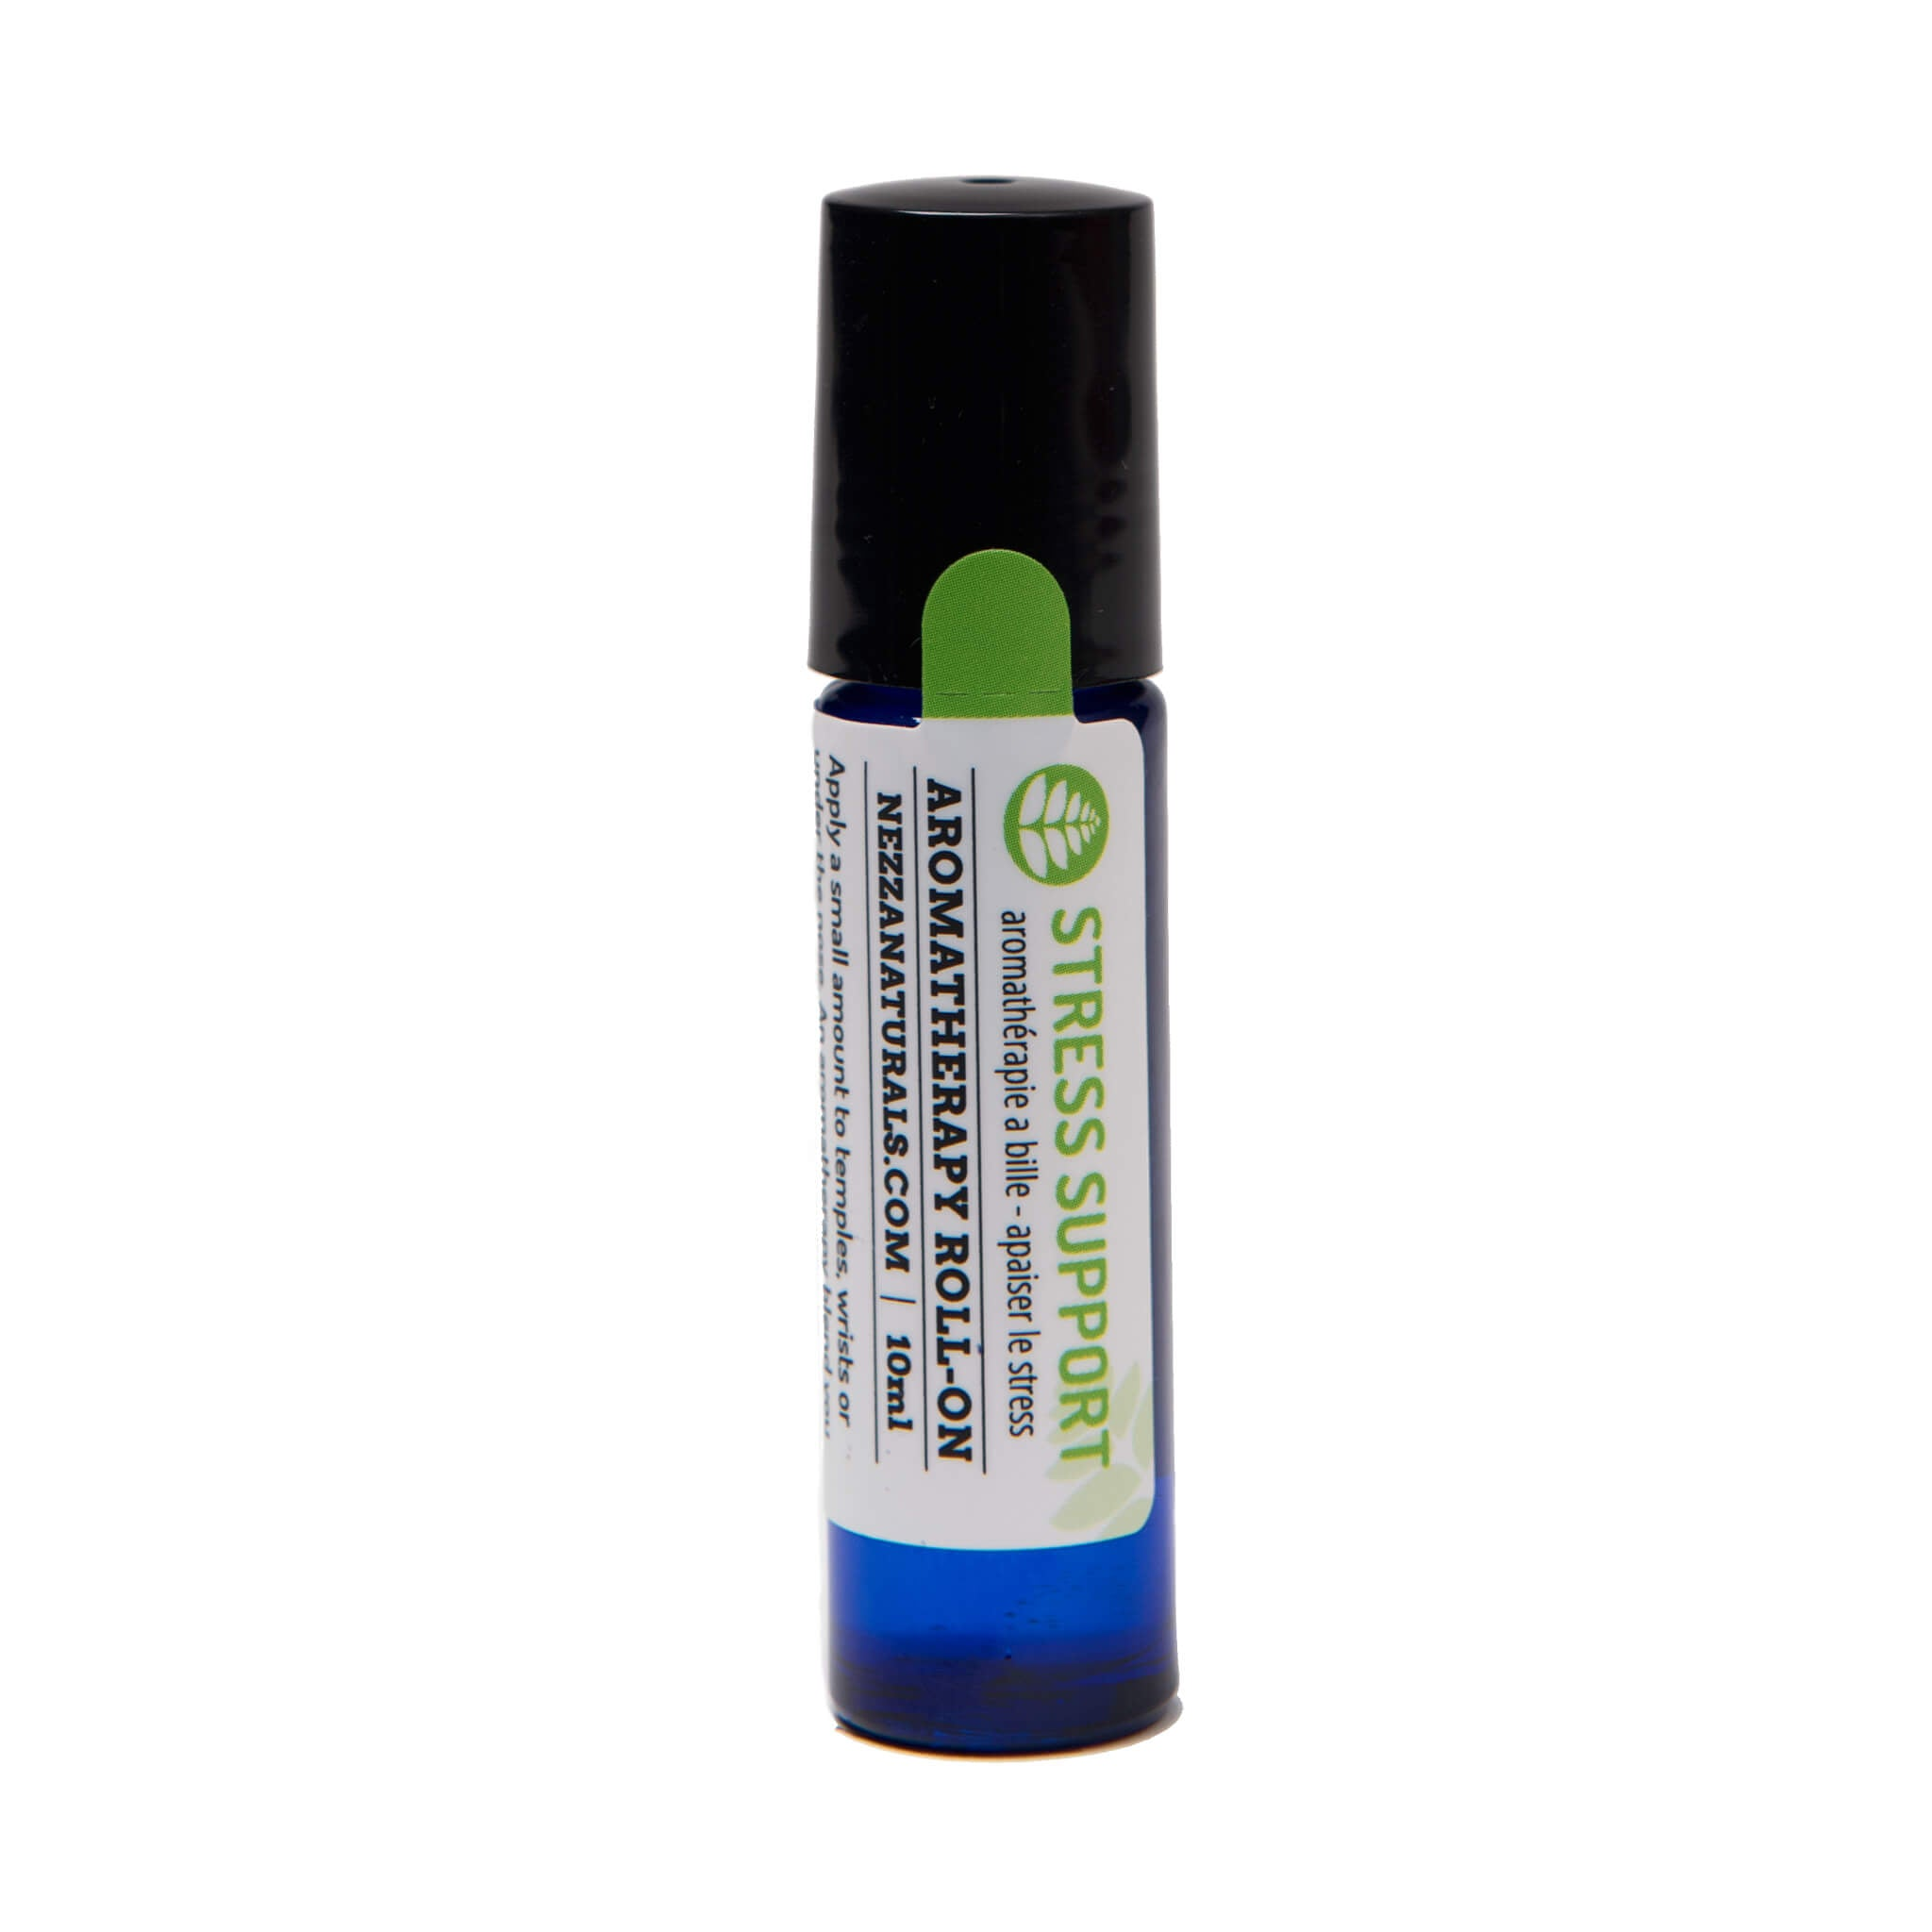 Stress Support Aromatherapy Roll On